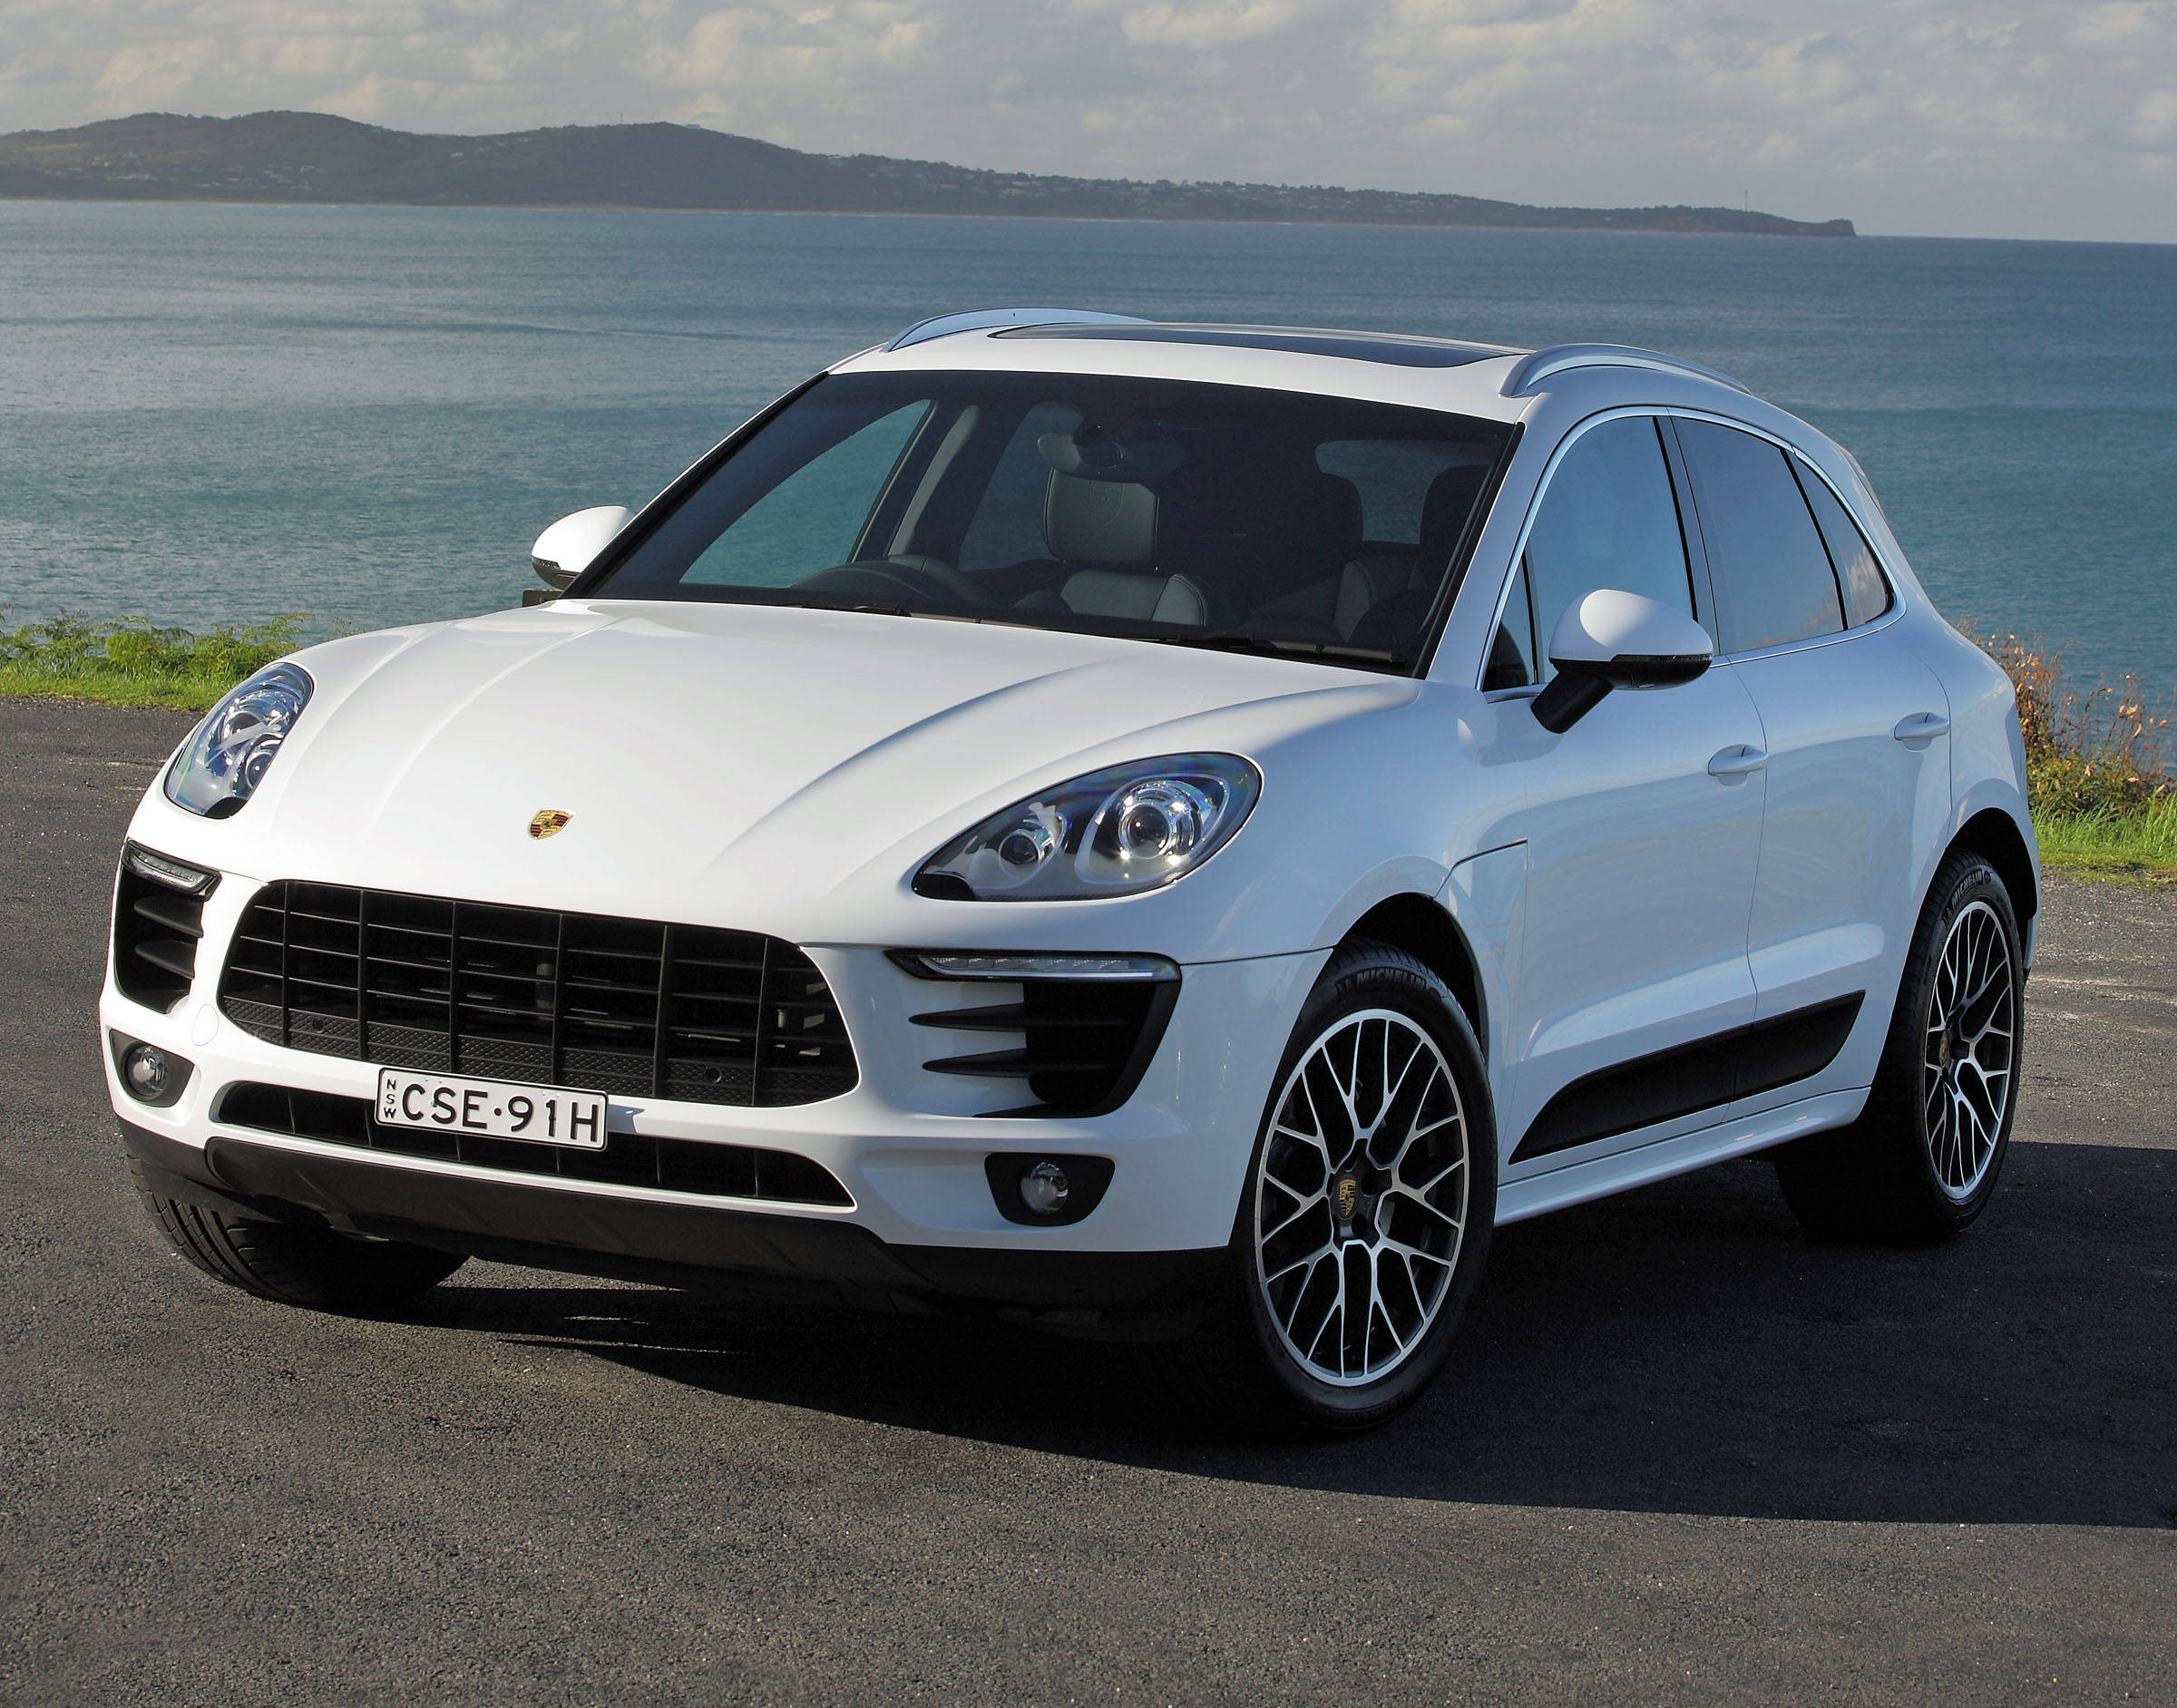 porsche macan s 2015 review carsguide. Black Bedroom Furniture Sets. Home Design Ideas